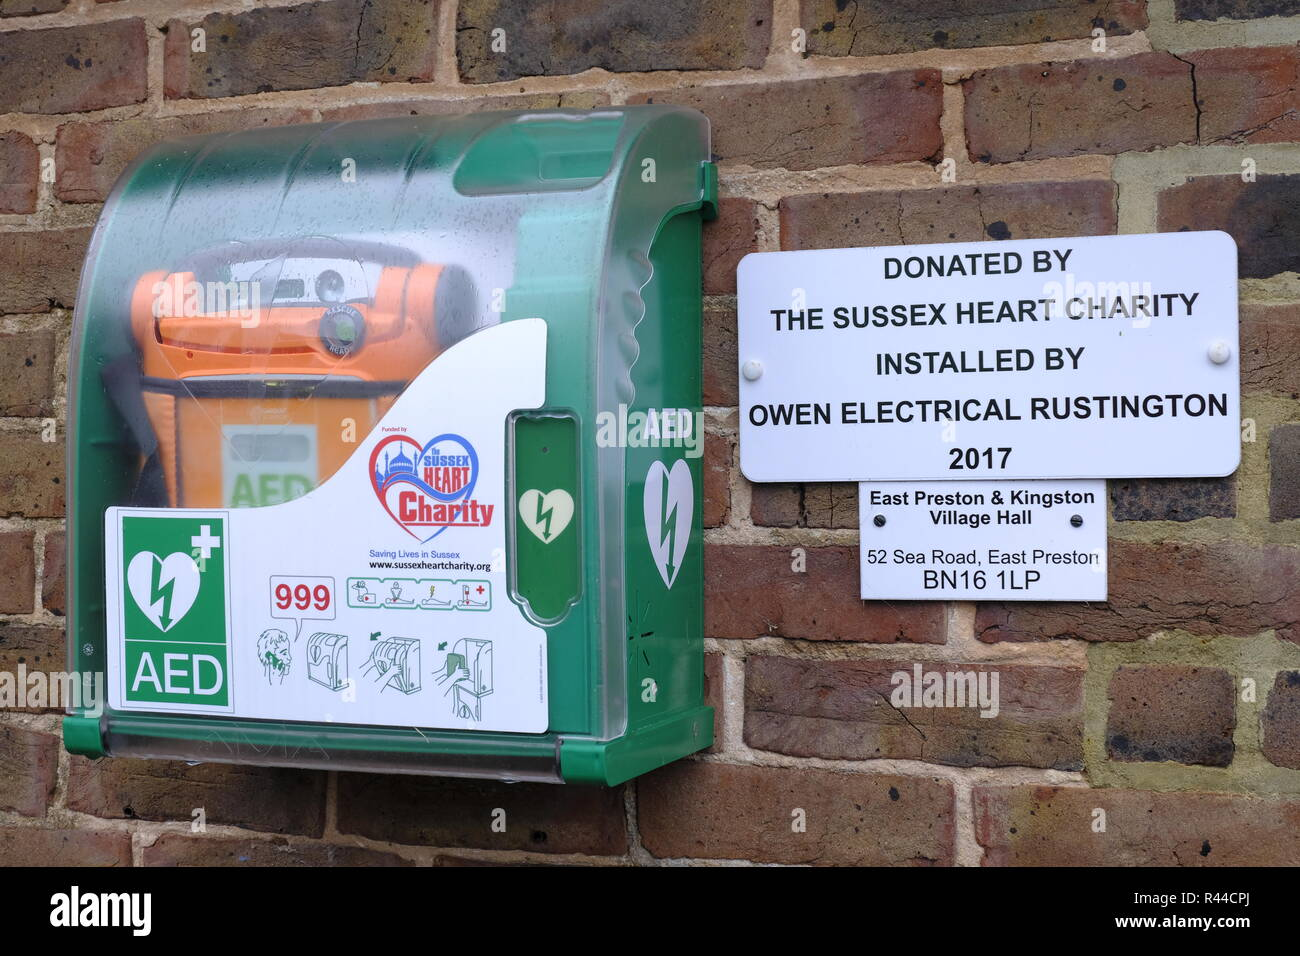 Public access defibrillator attached to the wall of village hall in East Preston, West Sussex, UK - Stock Image